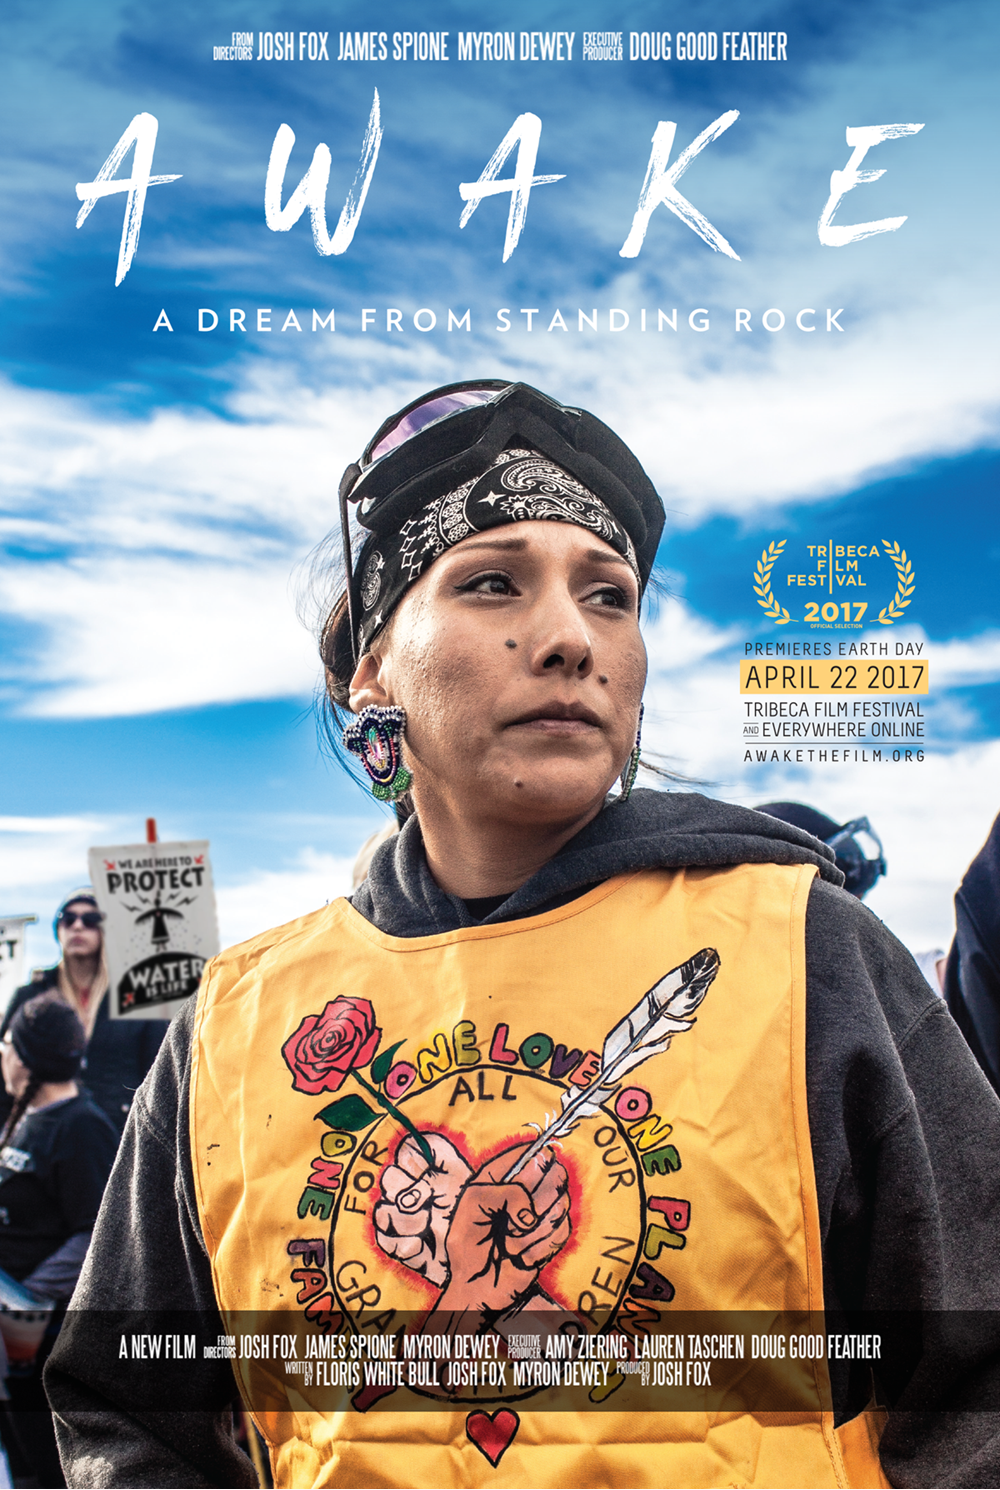 A Dream from Standing Rock""